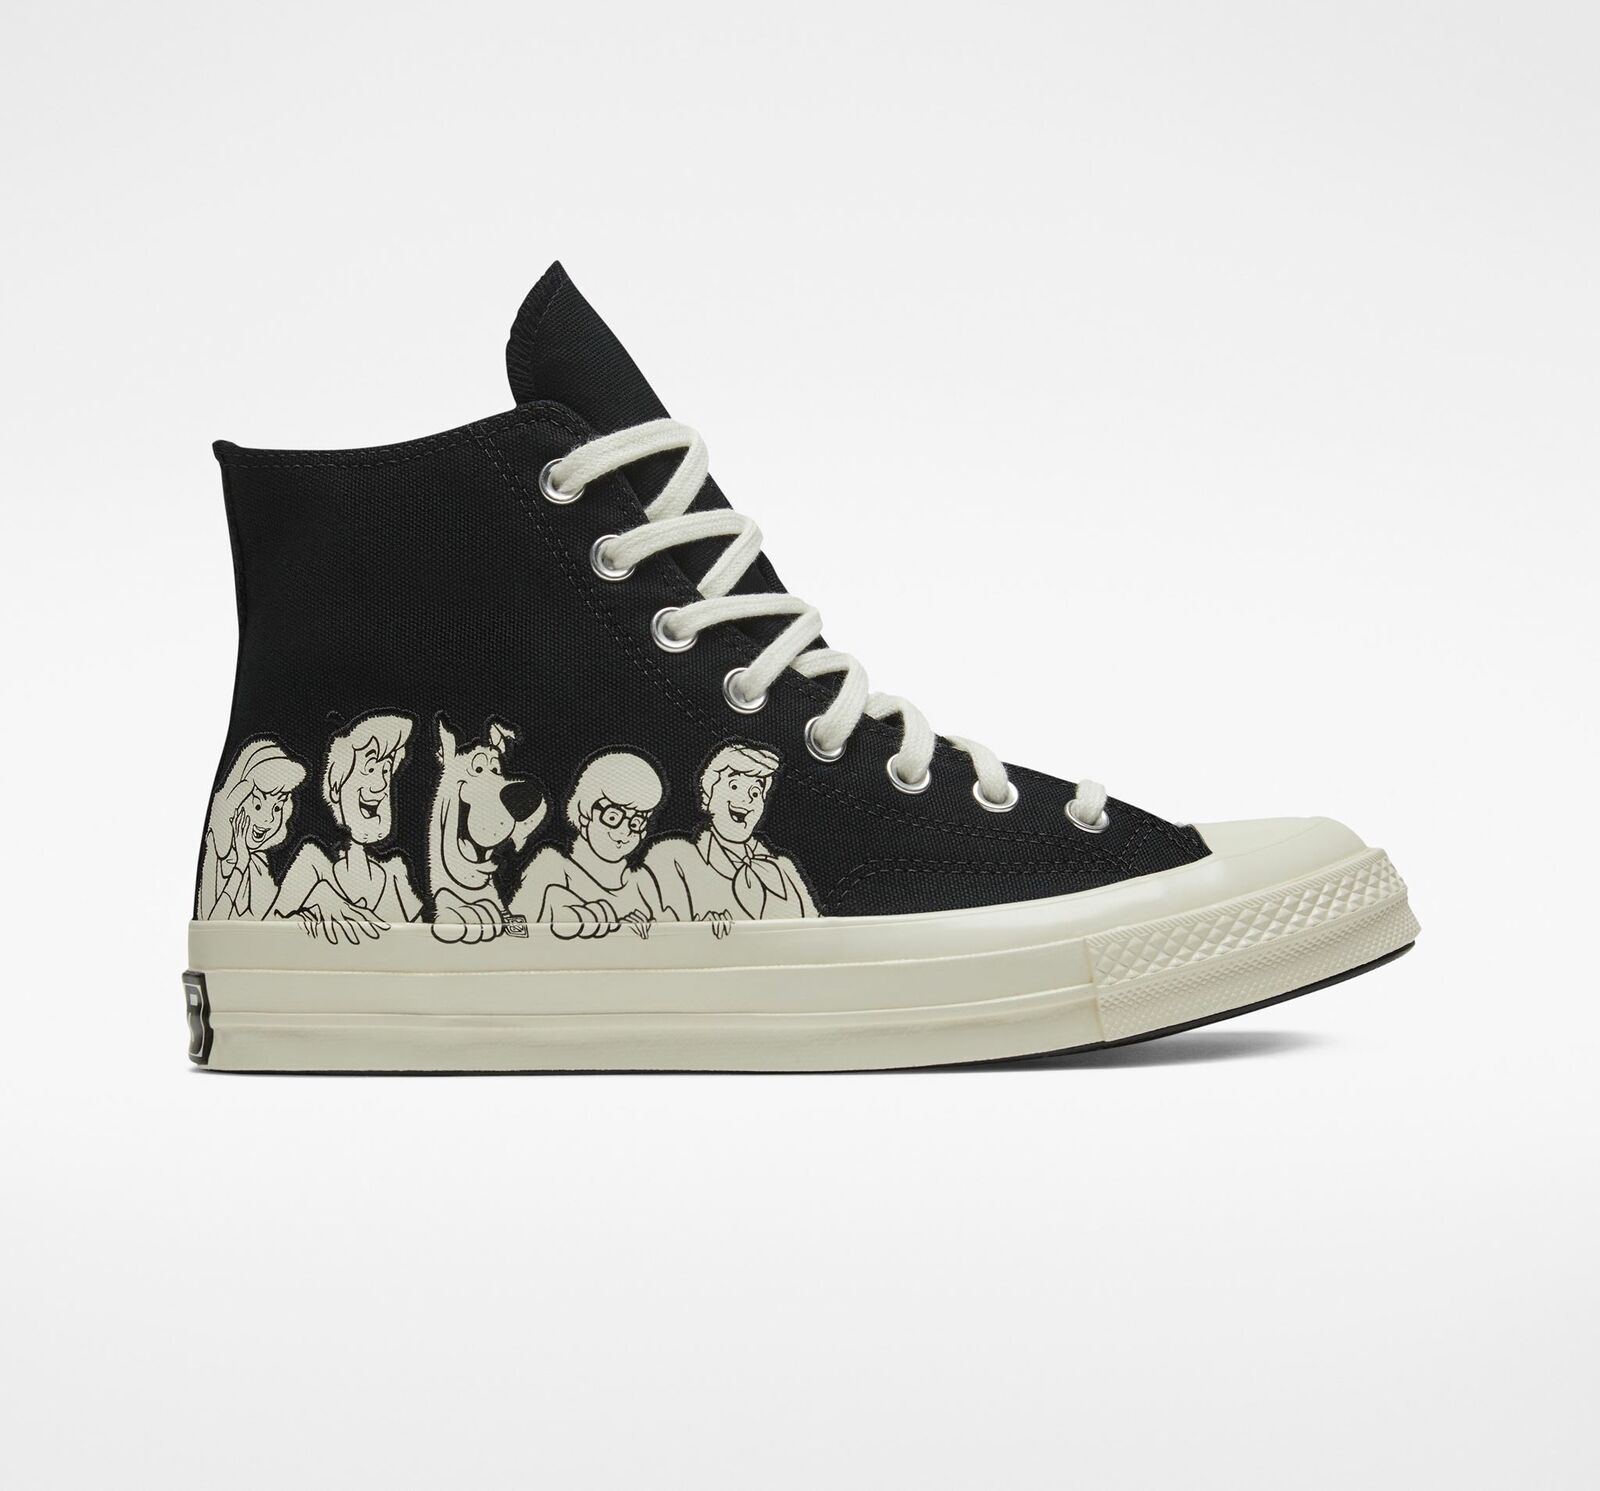 Converse Chuck Taylor All Star 70s Hi Scooby Doo Group